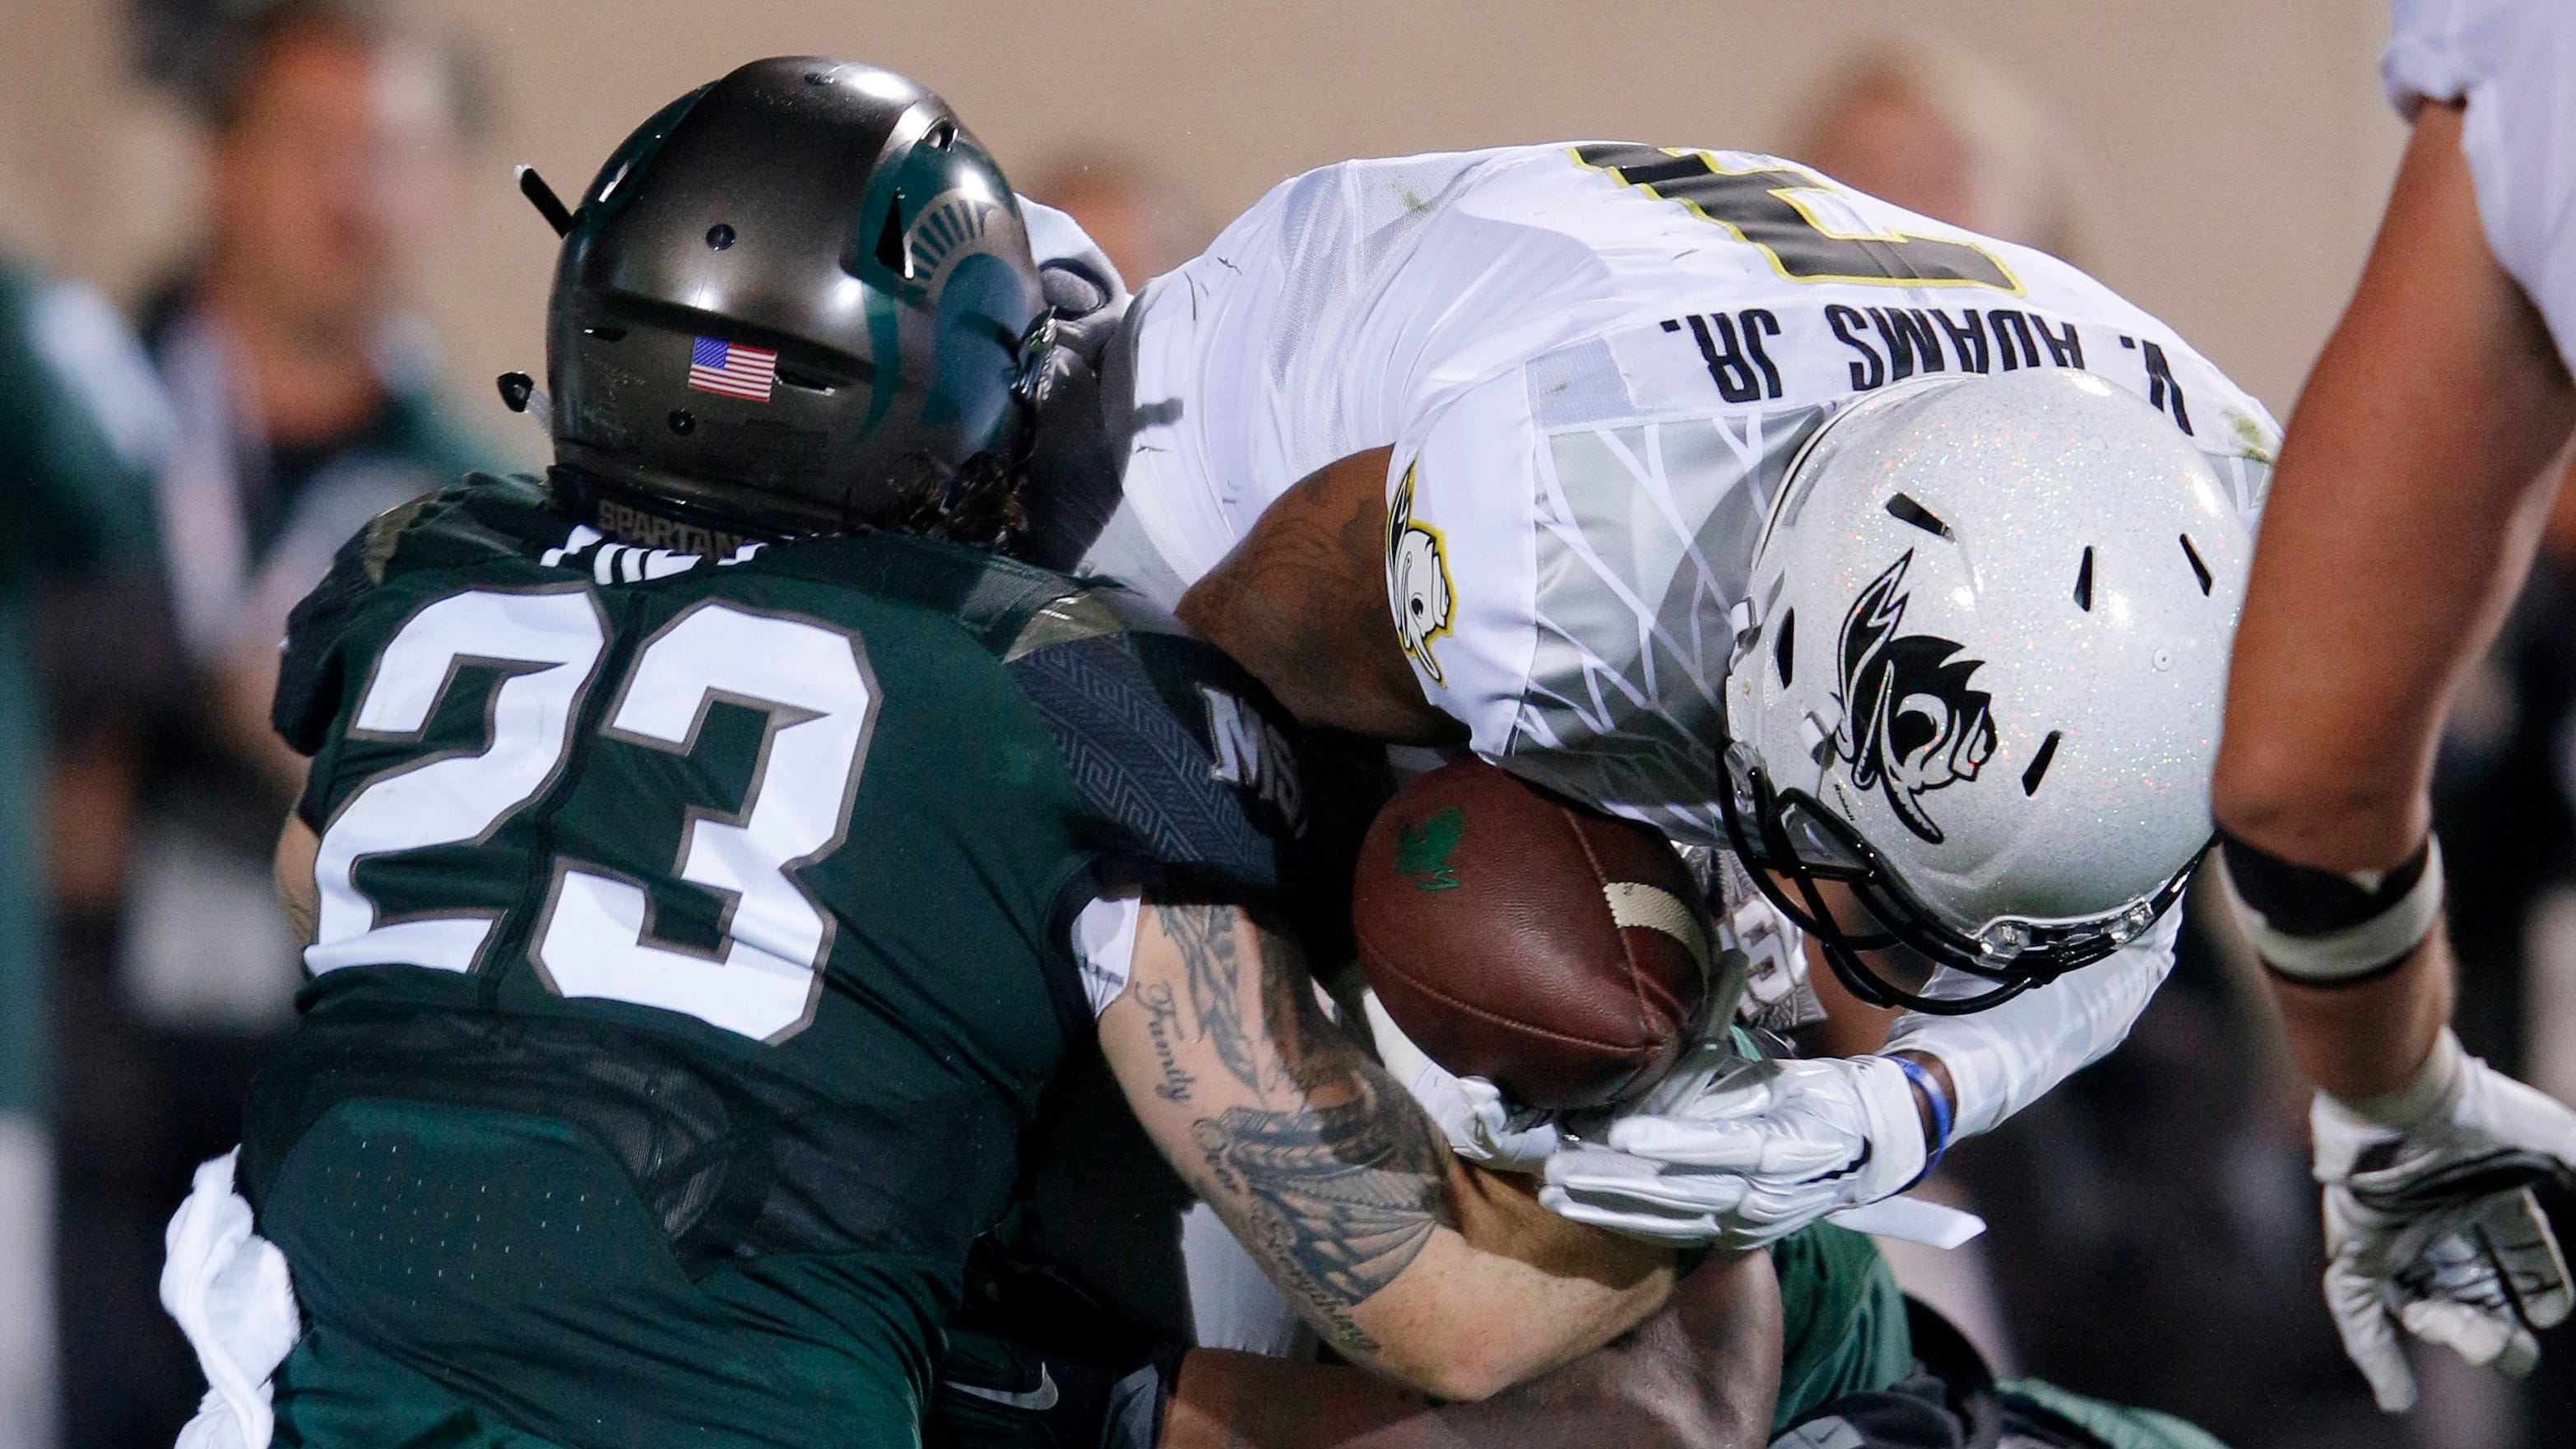 Michigan State and Oregon will square off at Spartan Stadium on Sept. 8, 2029, with Michigan State making the return trip to Autzen Stadium in Eugene, Ore., on Sept. 7, 2030.